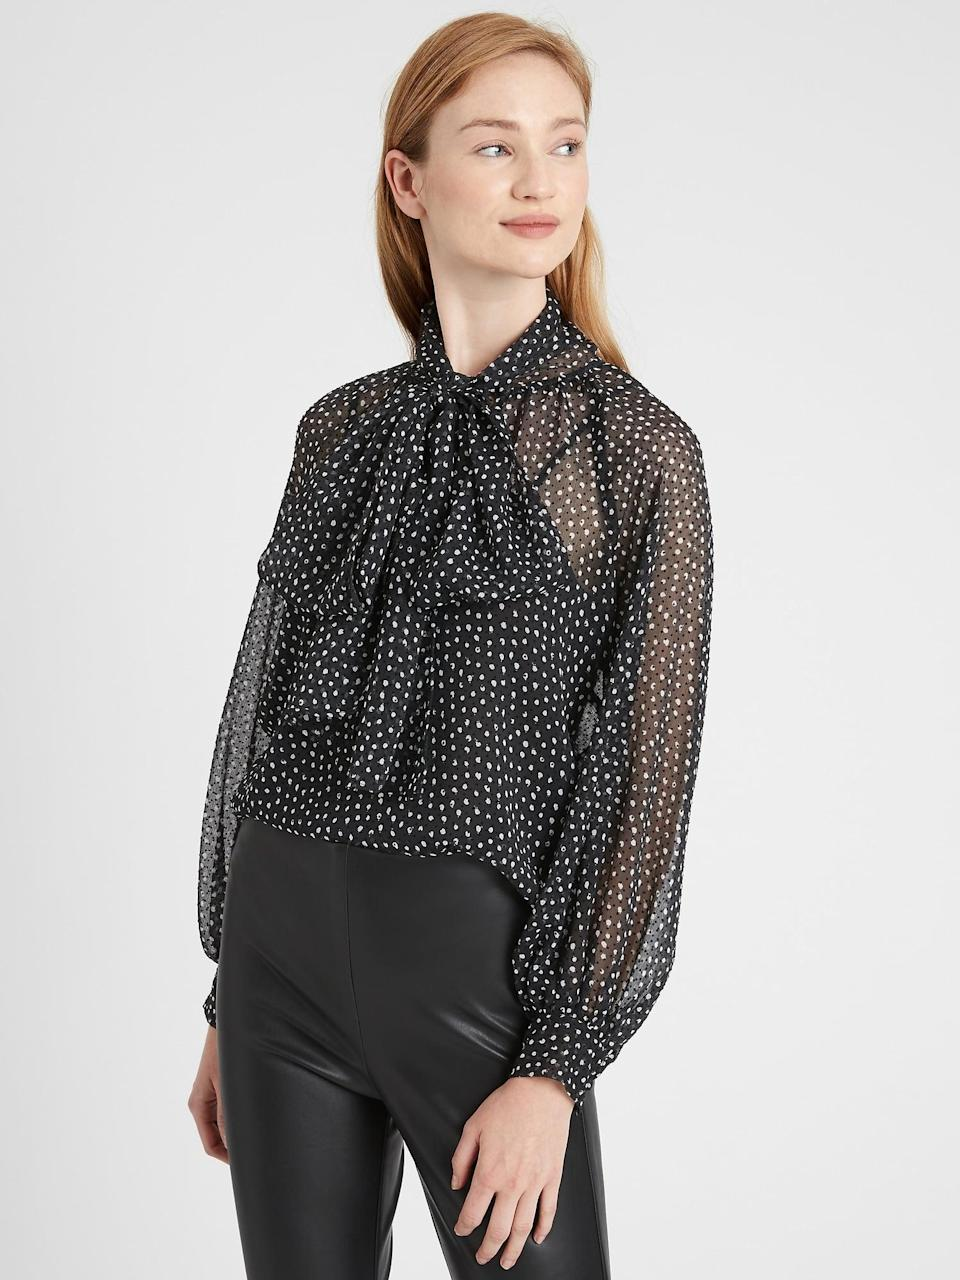 <p>We love an elegant tie-neck blouse as it channels a romantic era style. Pair this <span>Banana Republic Velvet Dot Tie-Neck Blouse</span> ($33, originally $99) with a pair of leather pants for an edgy take.</p>